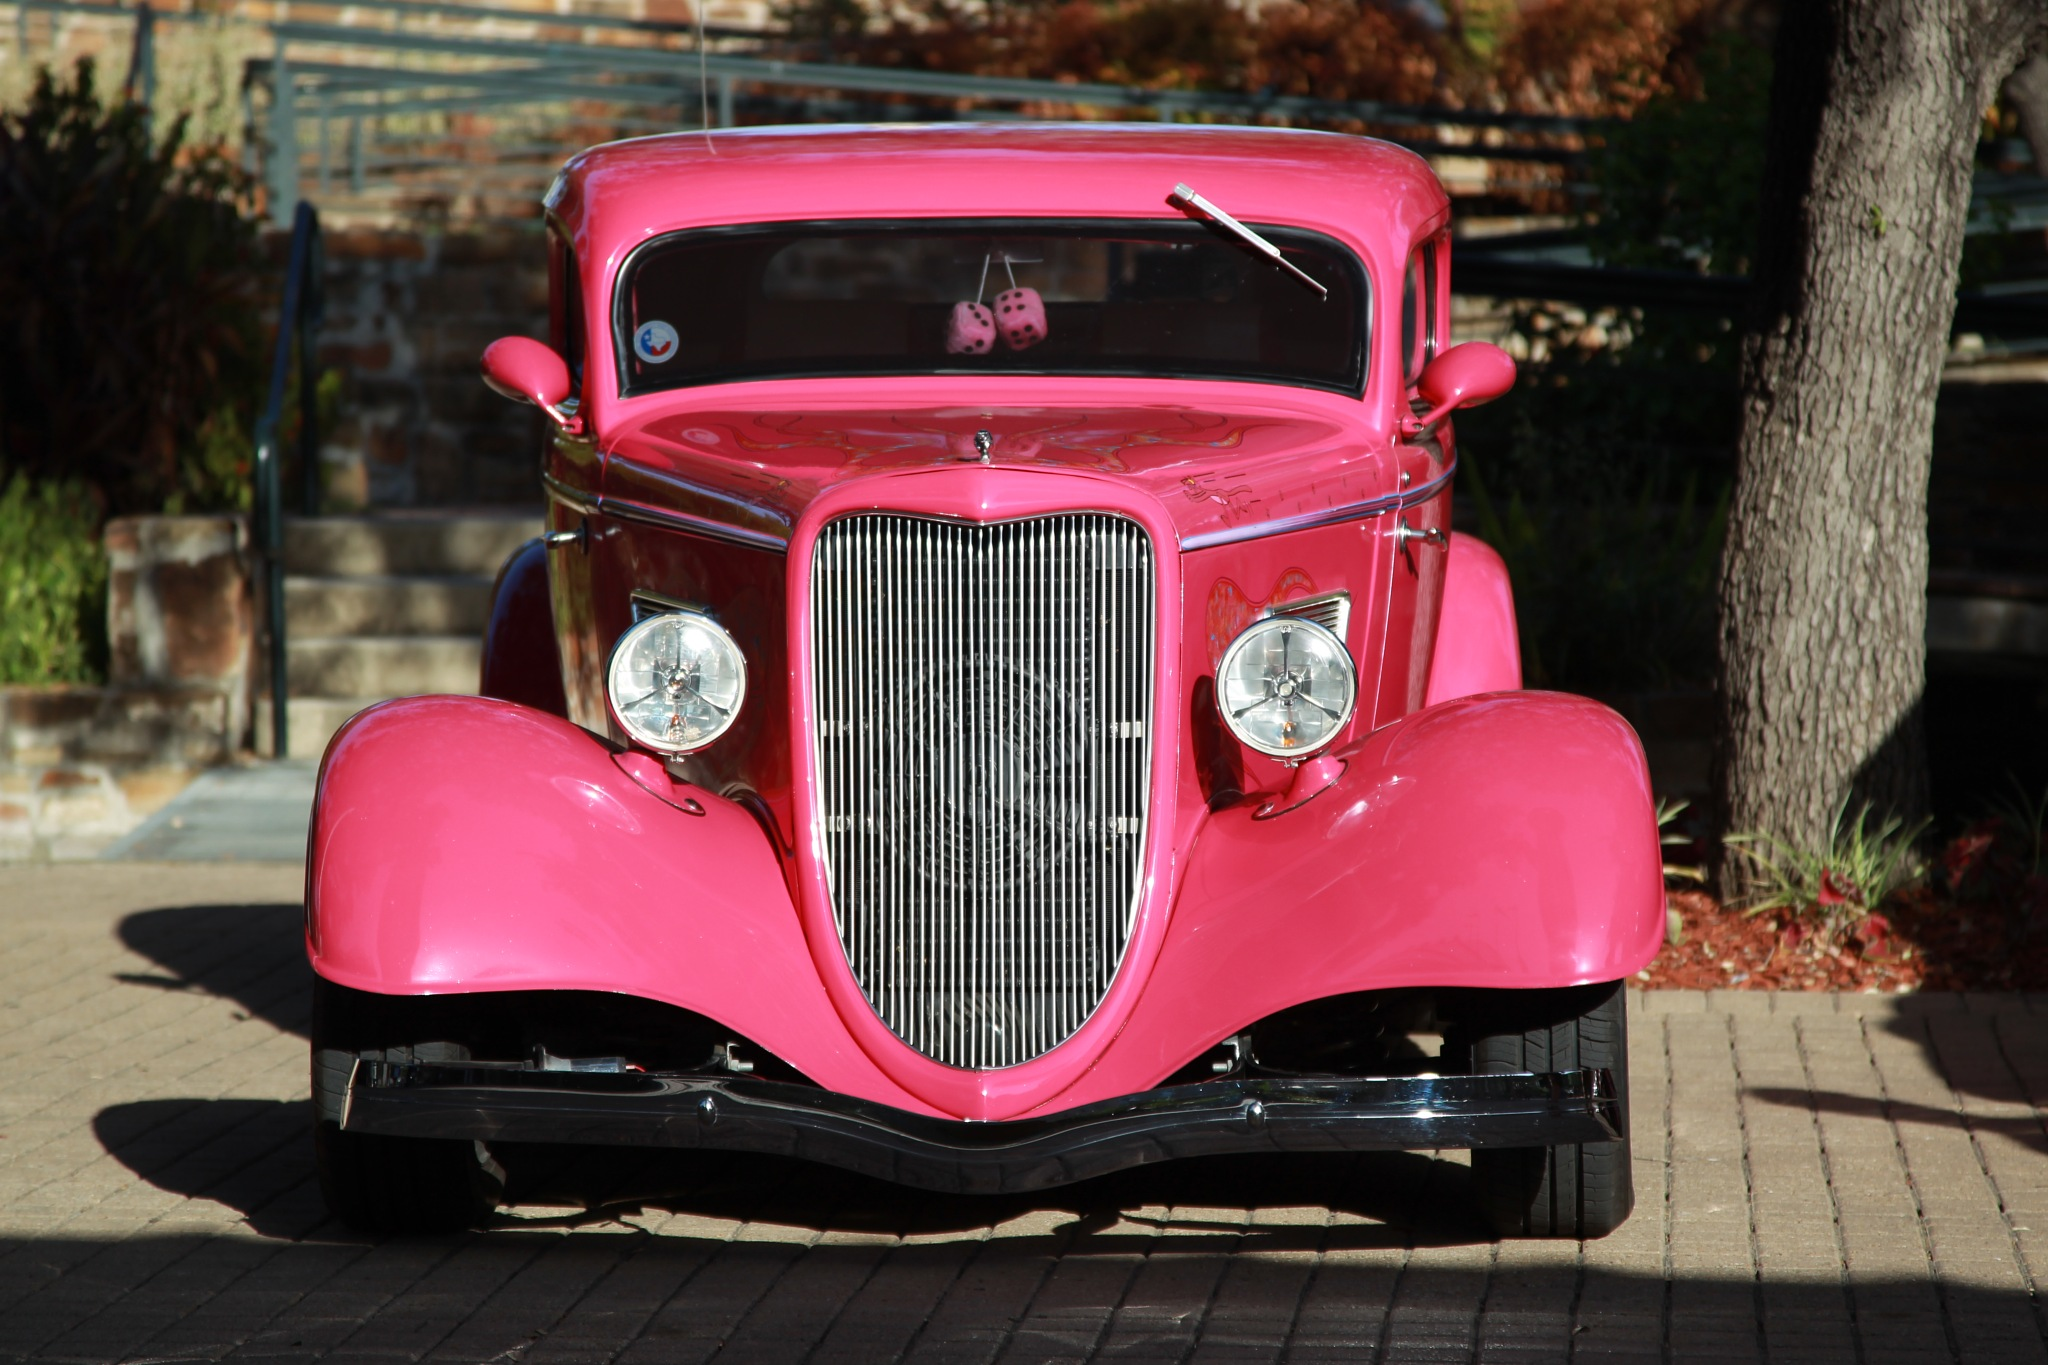 Pretty in Pink by Freedom Photography by J.S. Johnson